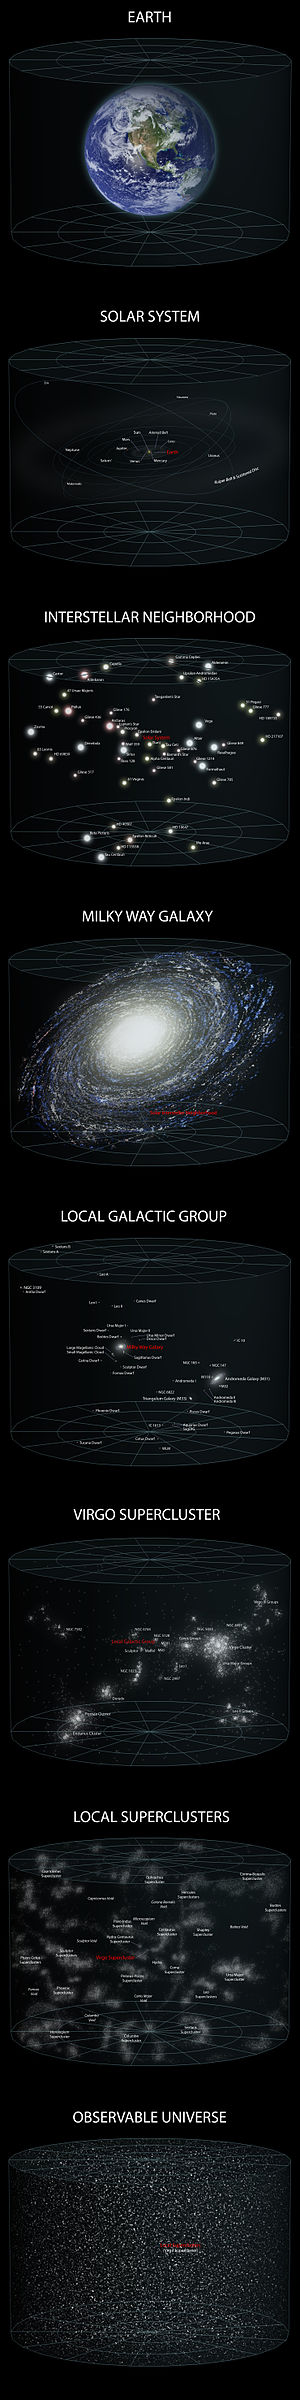 Earth's location in the Universe - A diagram of our location in the observable universe.